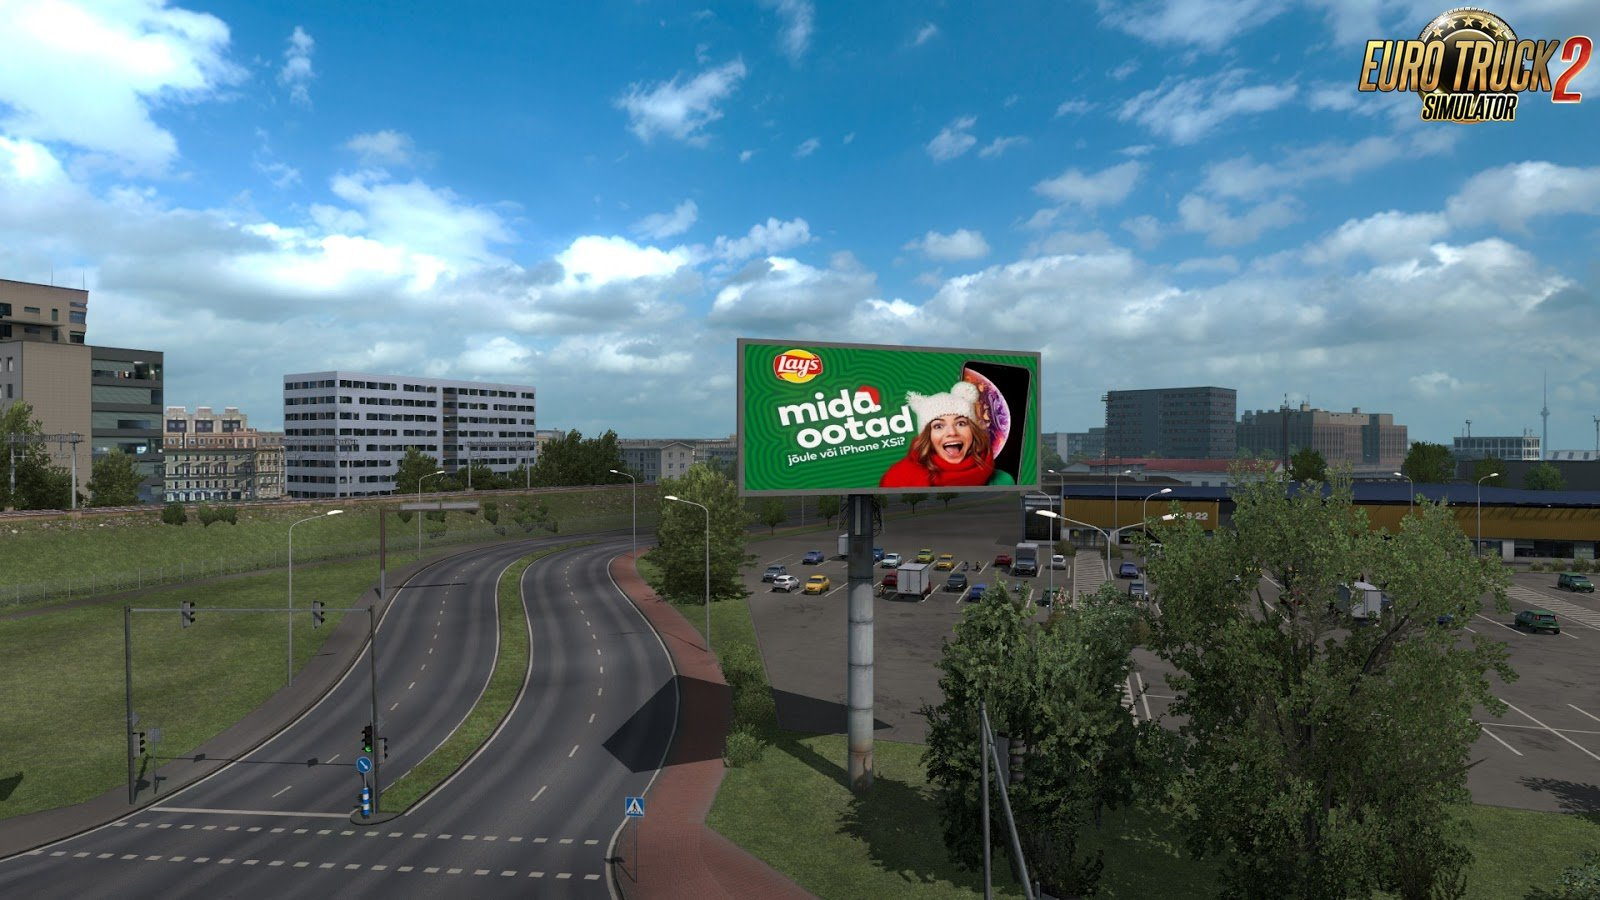 Real Advertisements v1.3 for Ets2